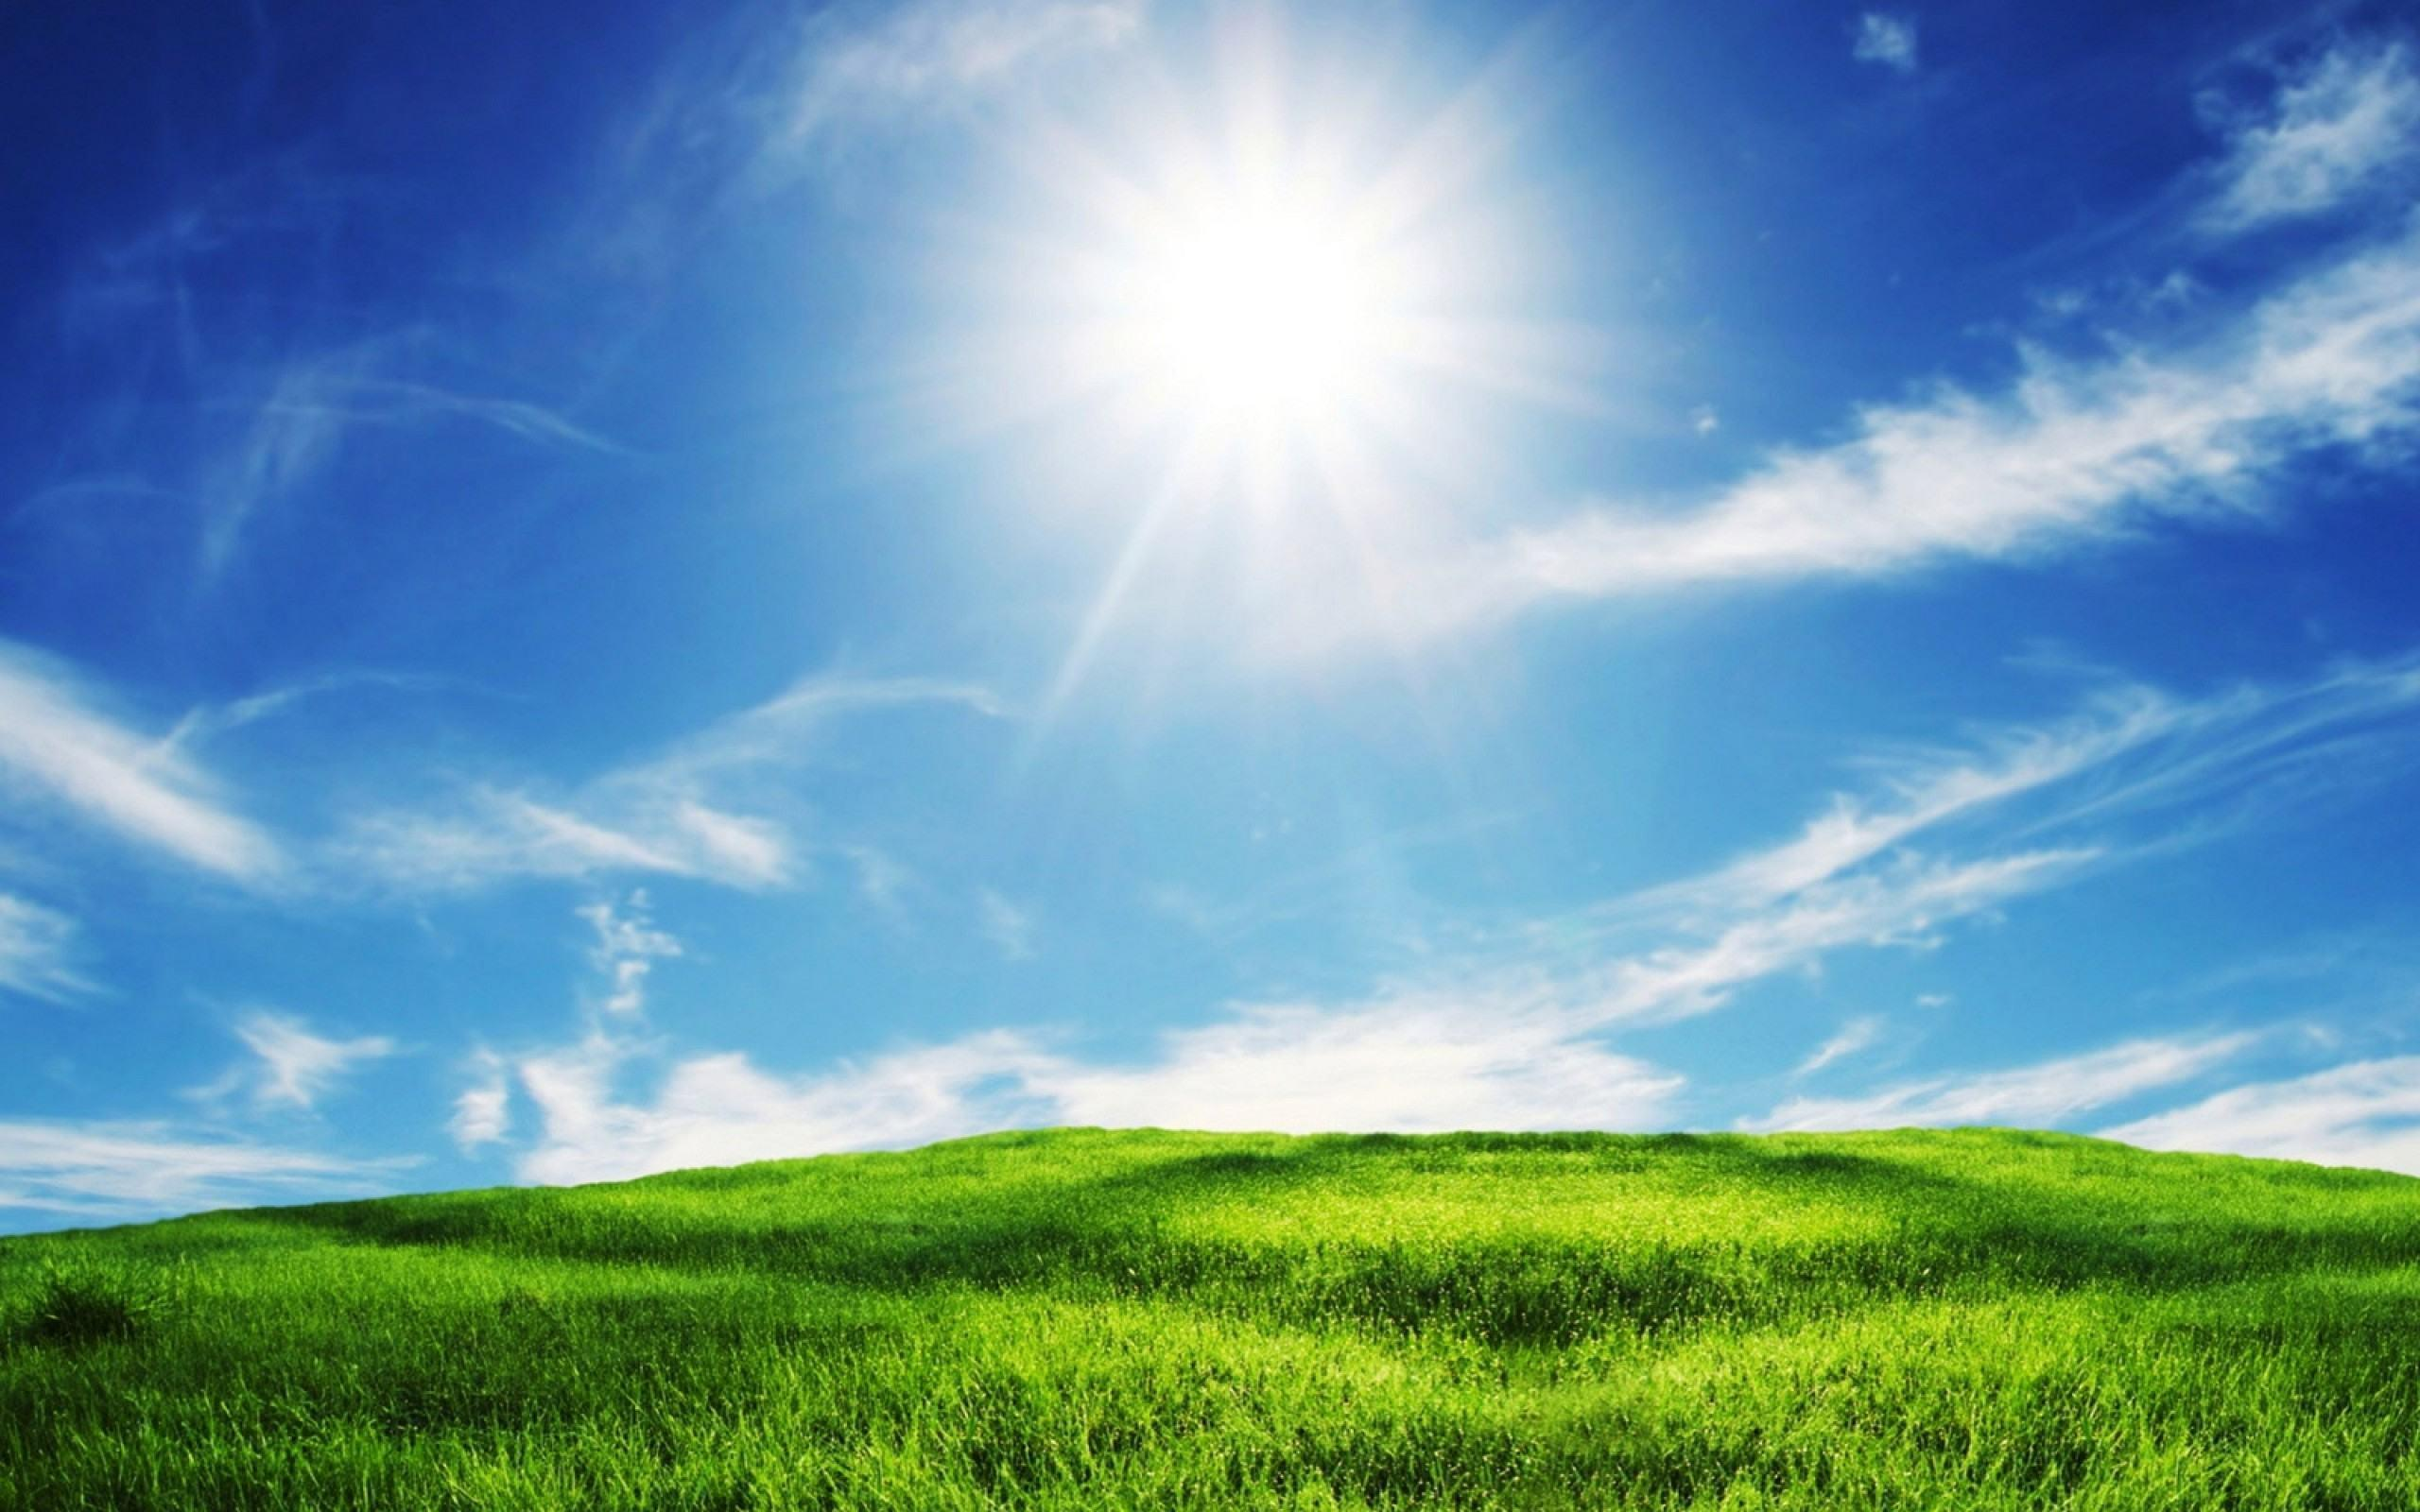 Green Grass Blue Sky Wallpapers Nature HD Wallpapers & Backgrounds